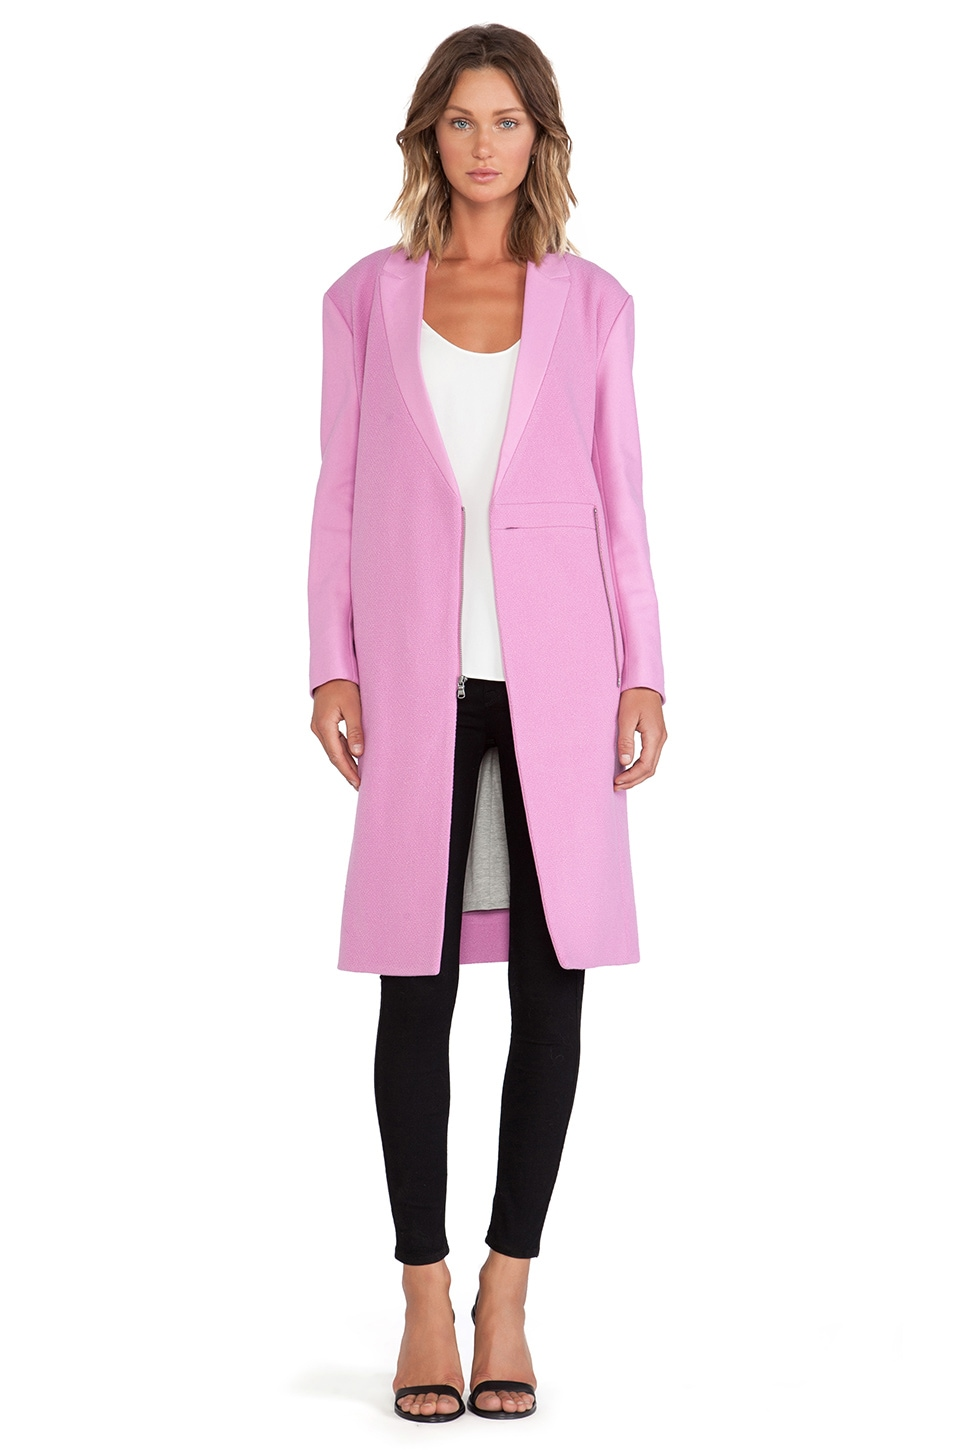 Pink Coats And Jackets - JacketIn